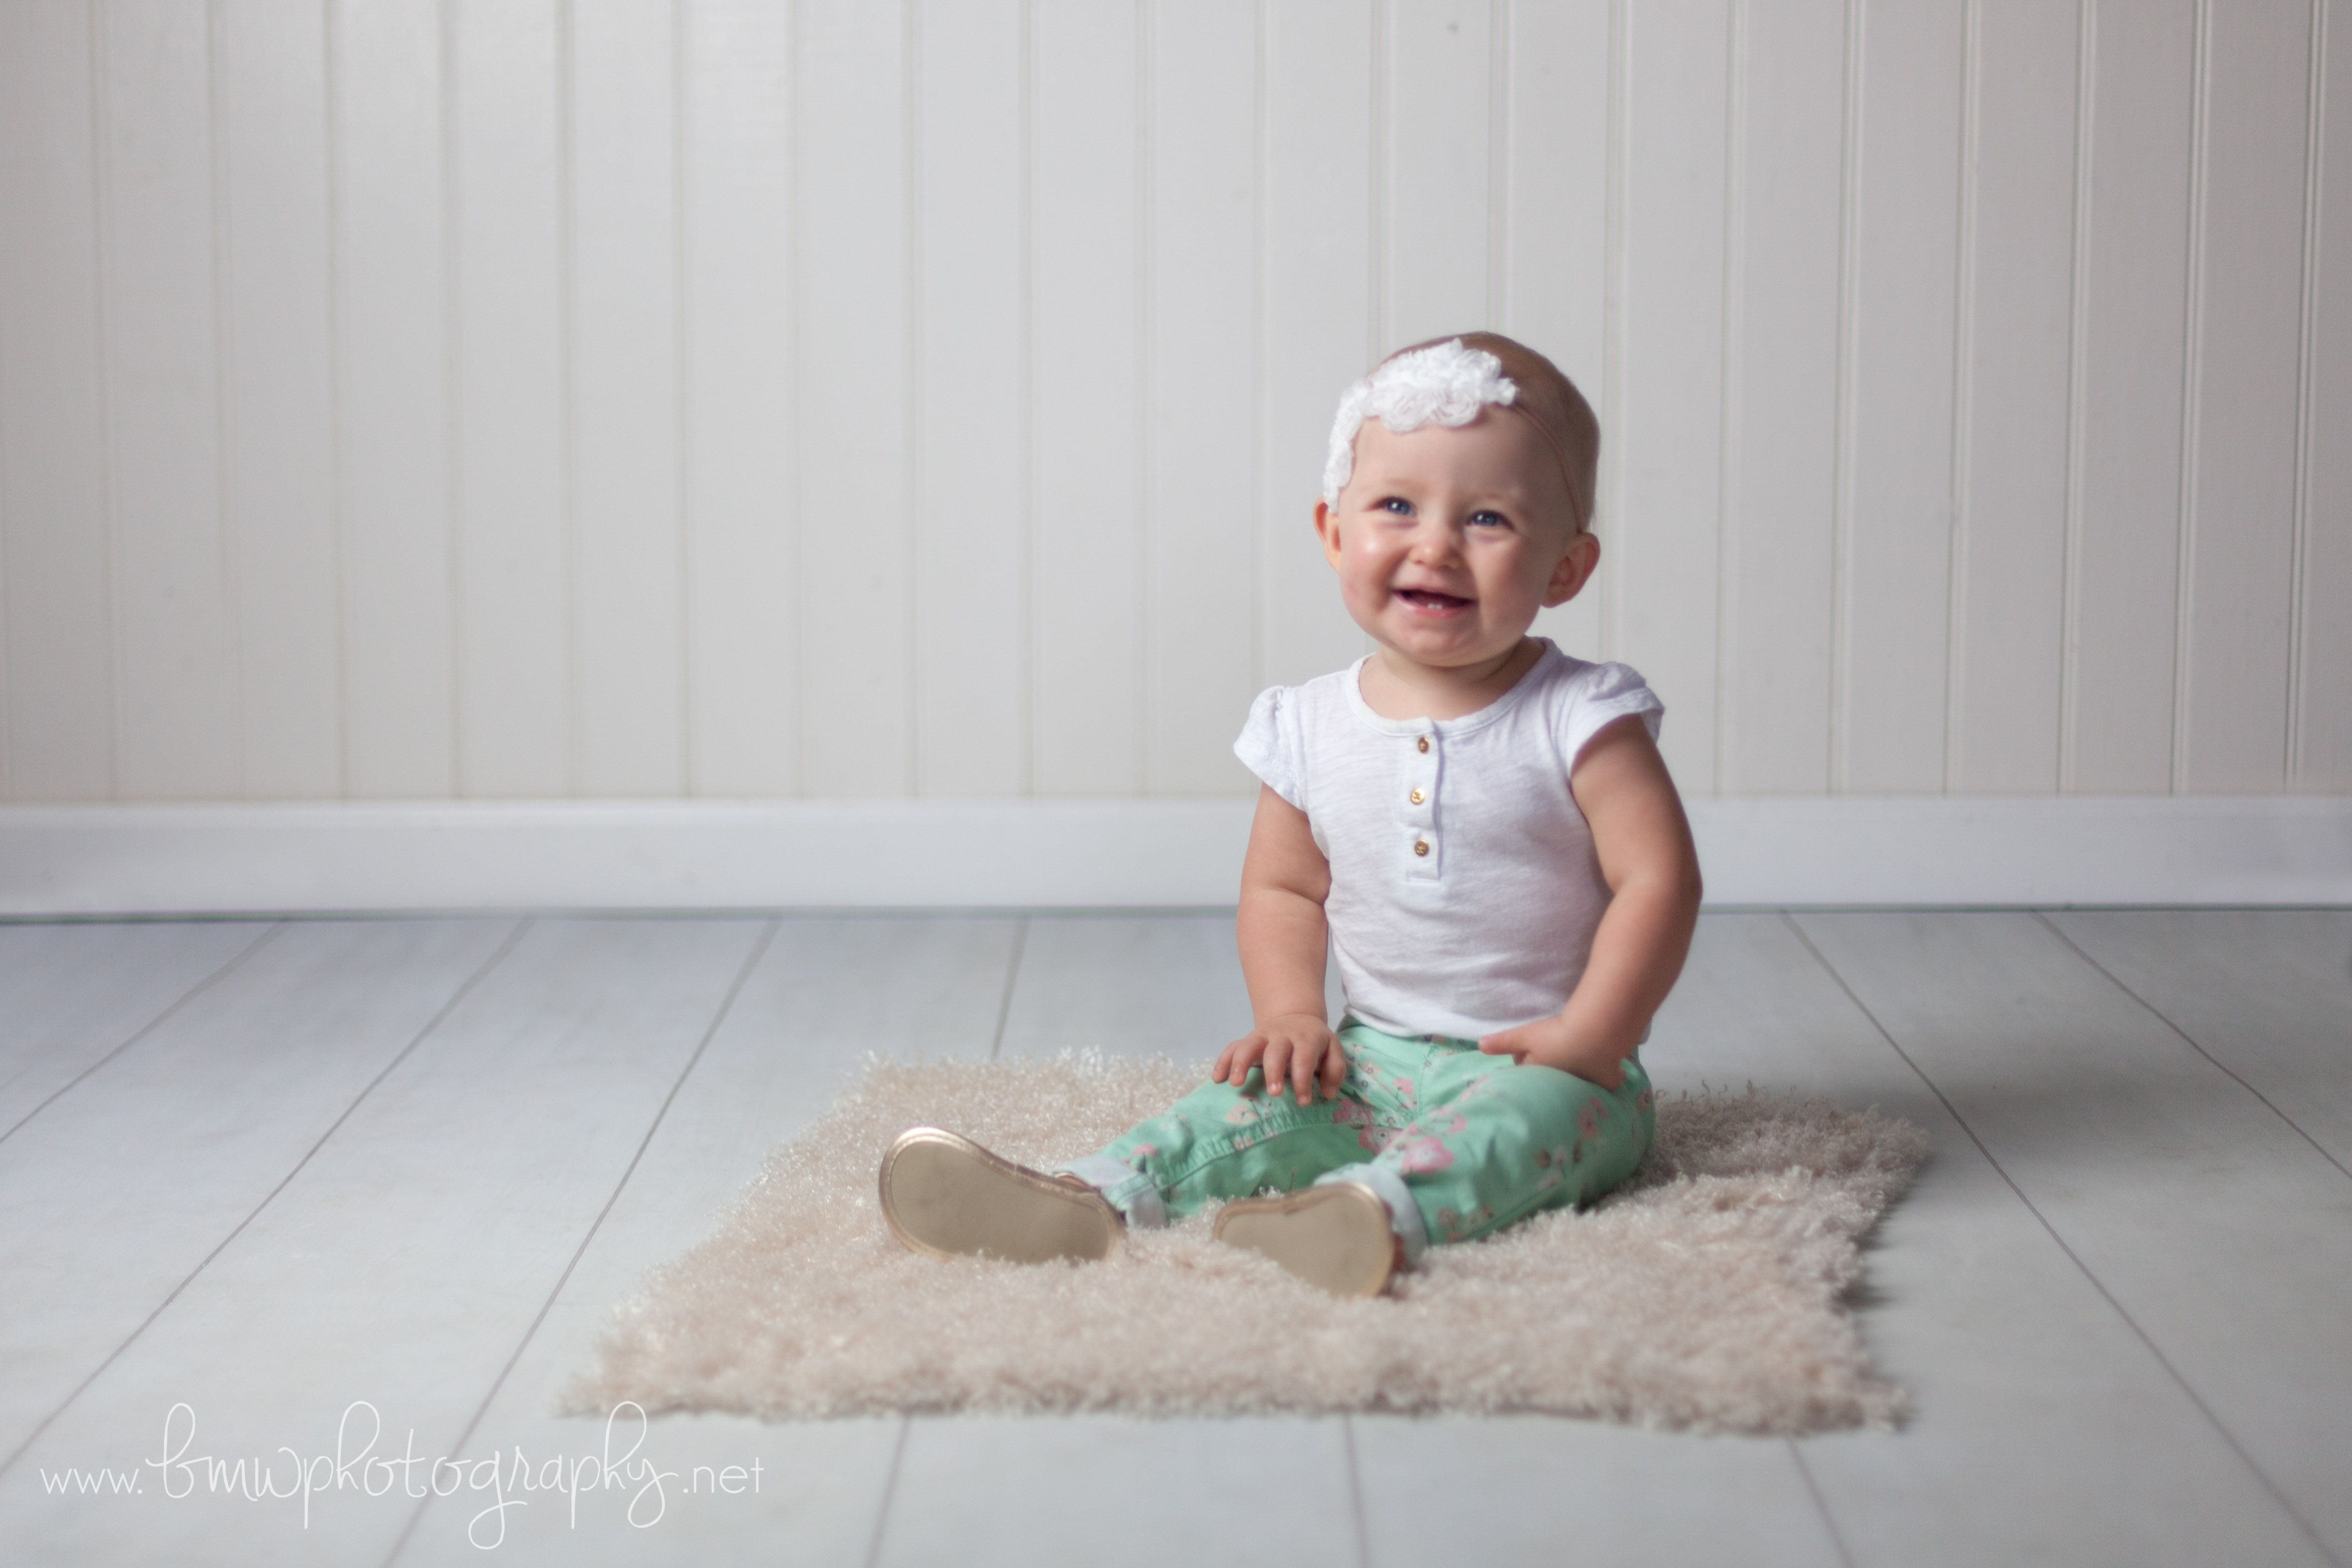 Twin Girls First Birthday Cake Smash Session Bmw Photography Boutique Family Photographer Based In Vancouver